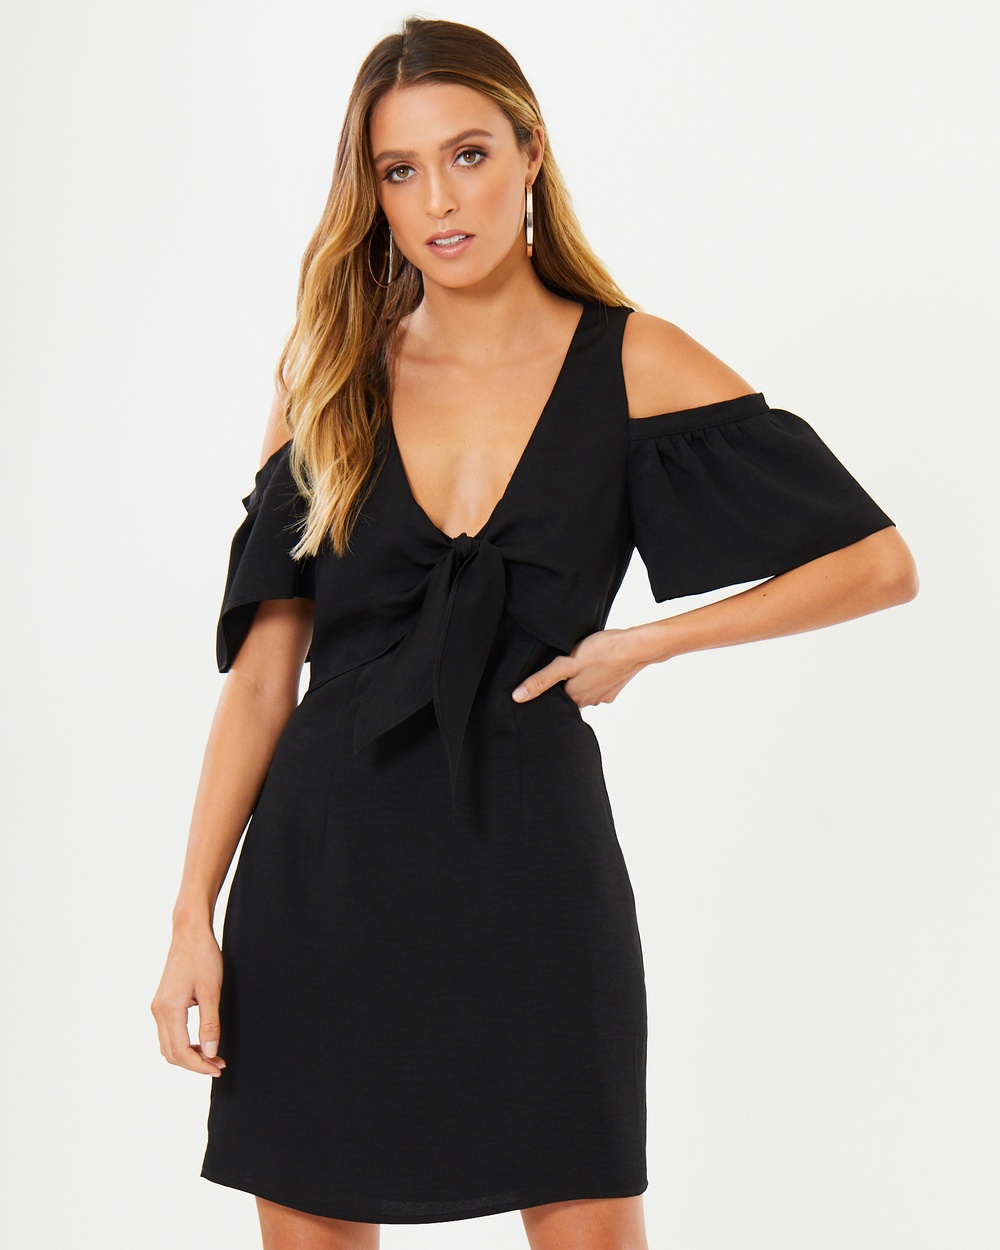 Photo of Tussah Black Corby Mini Dress - beautiful dress from Tussah online